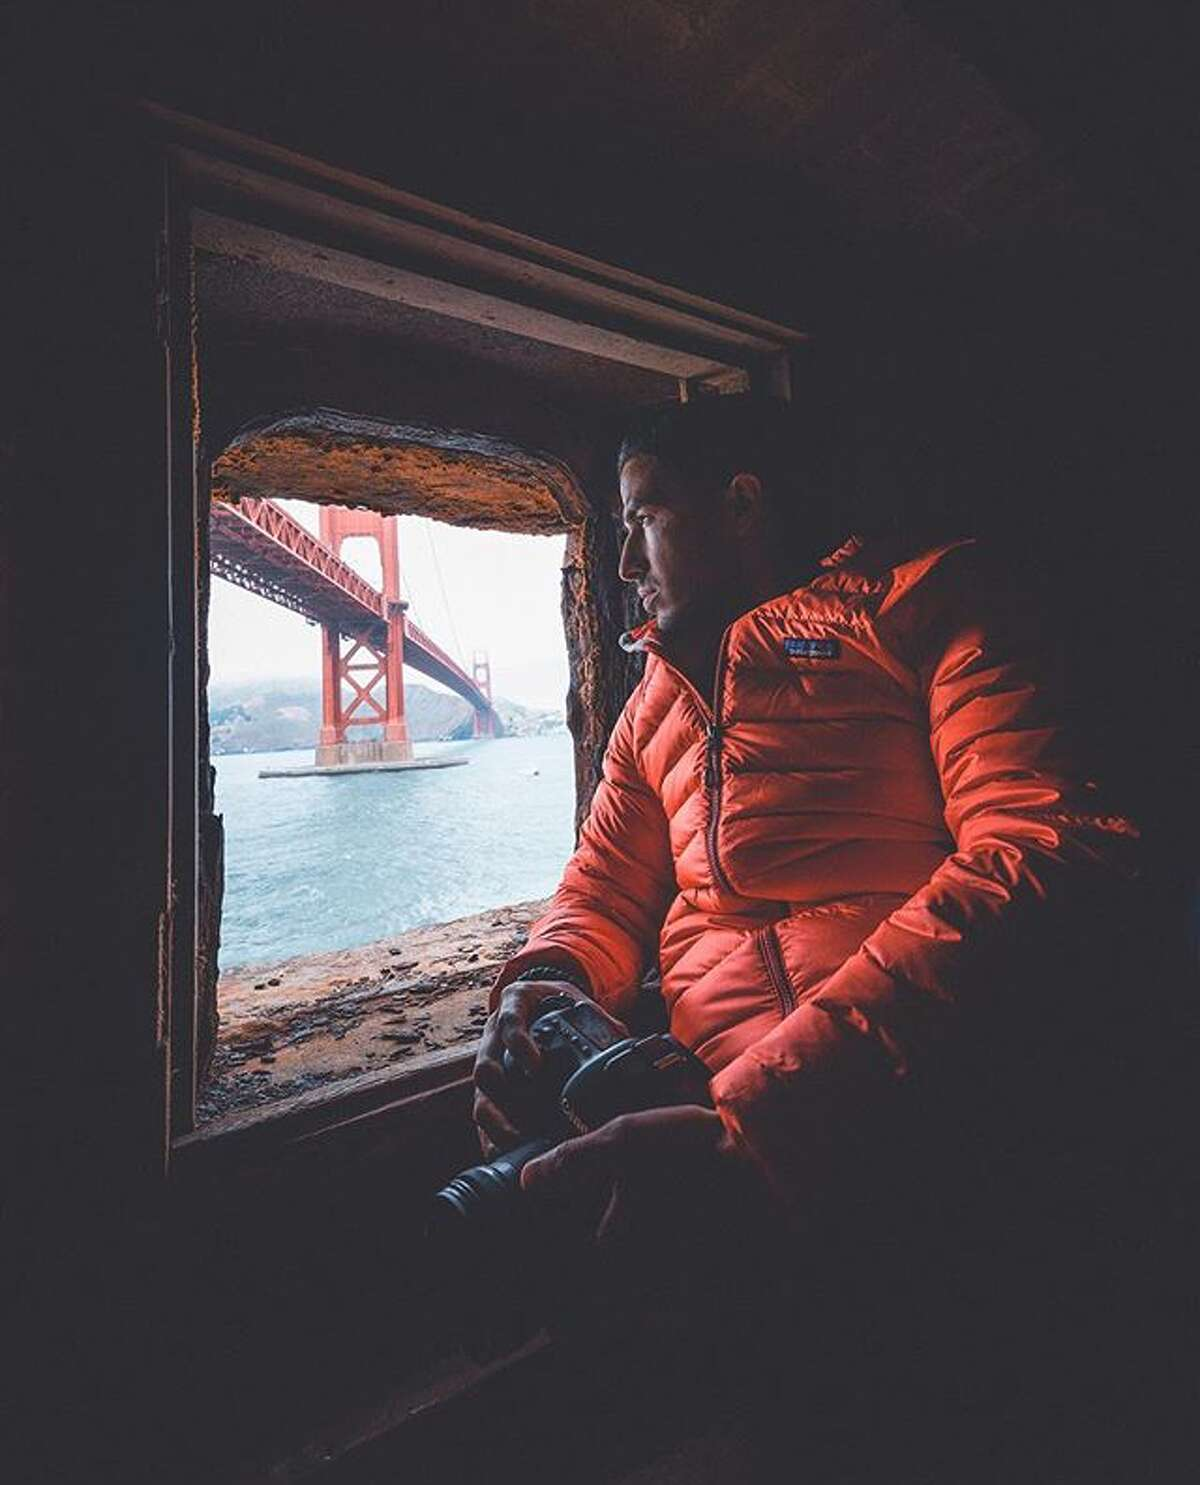 @adam_ali91 found a window view of the Golden Gate Bridge.